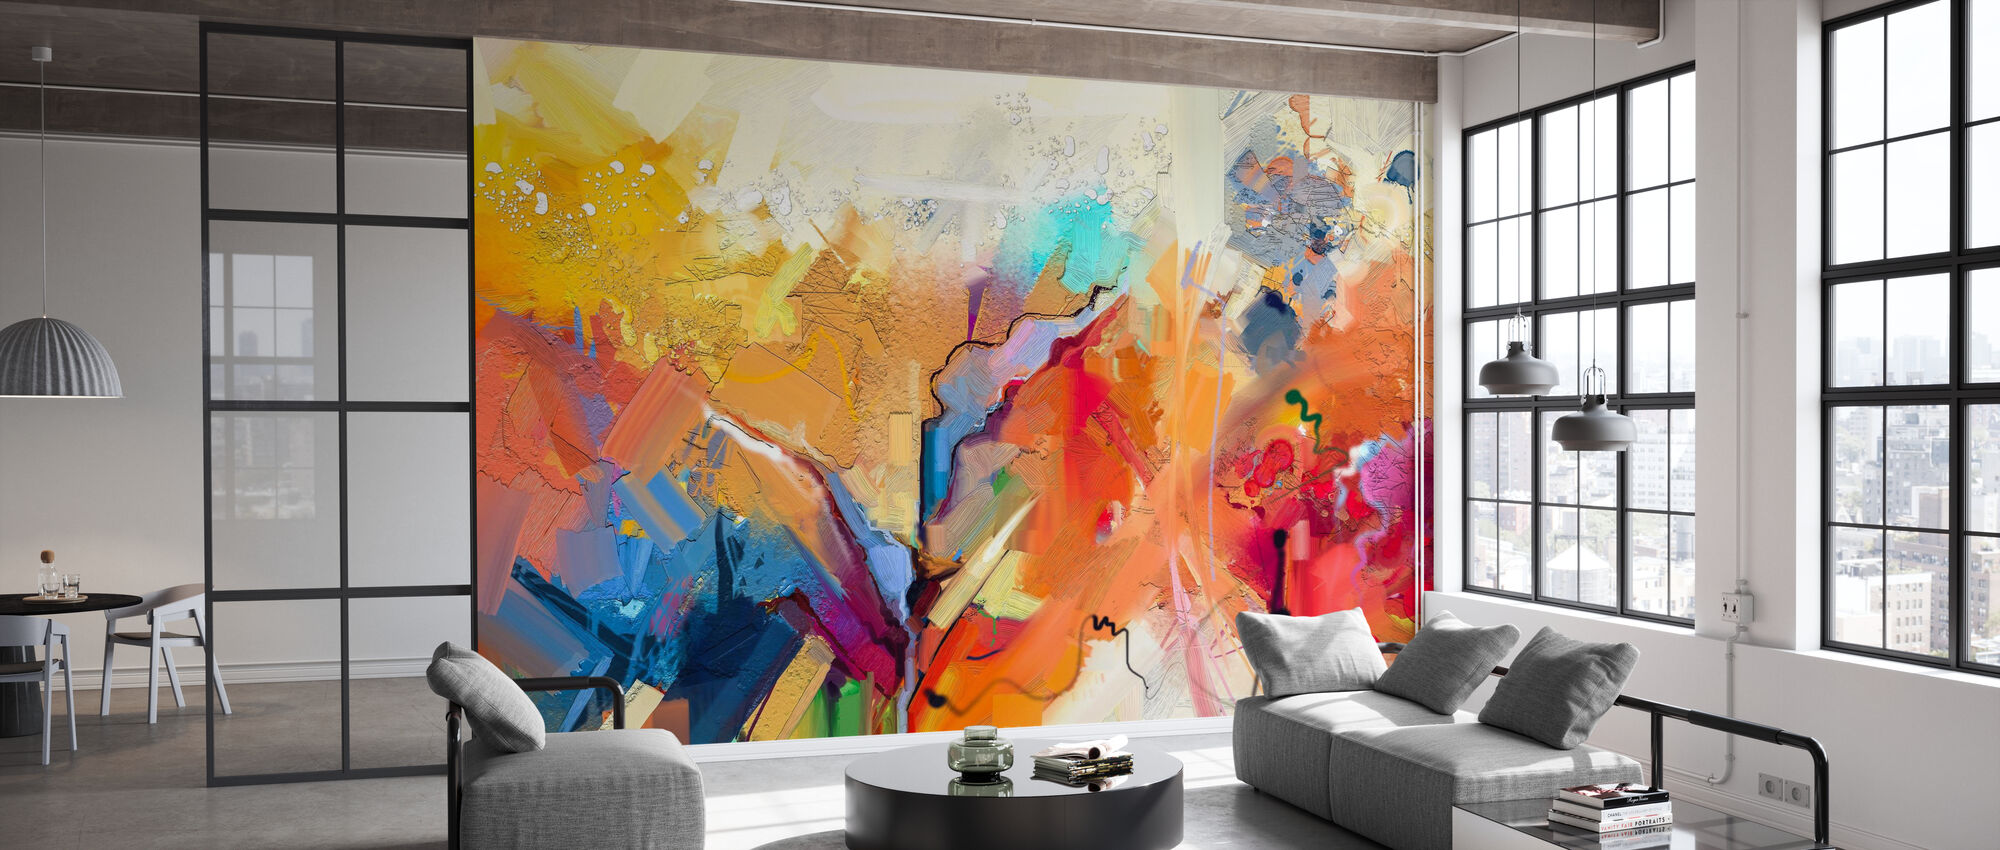 Colorful Abstract Painting - Wallpaper - Office